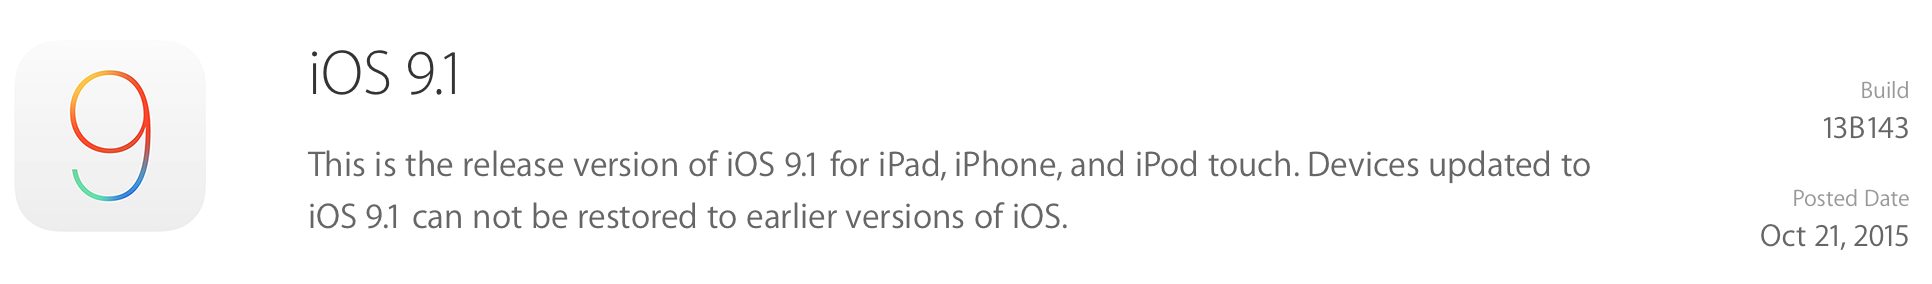 Apple iOS Update Topic-bildschirmfoto-2015-10-21-um-19.13.42.png